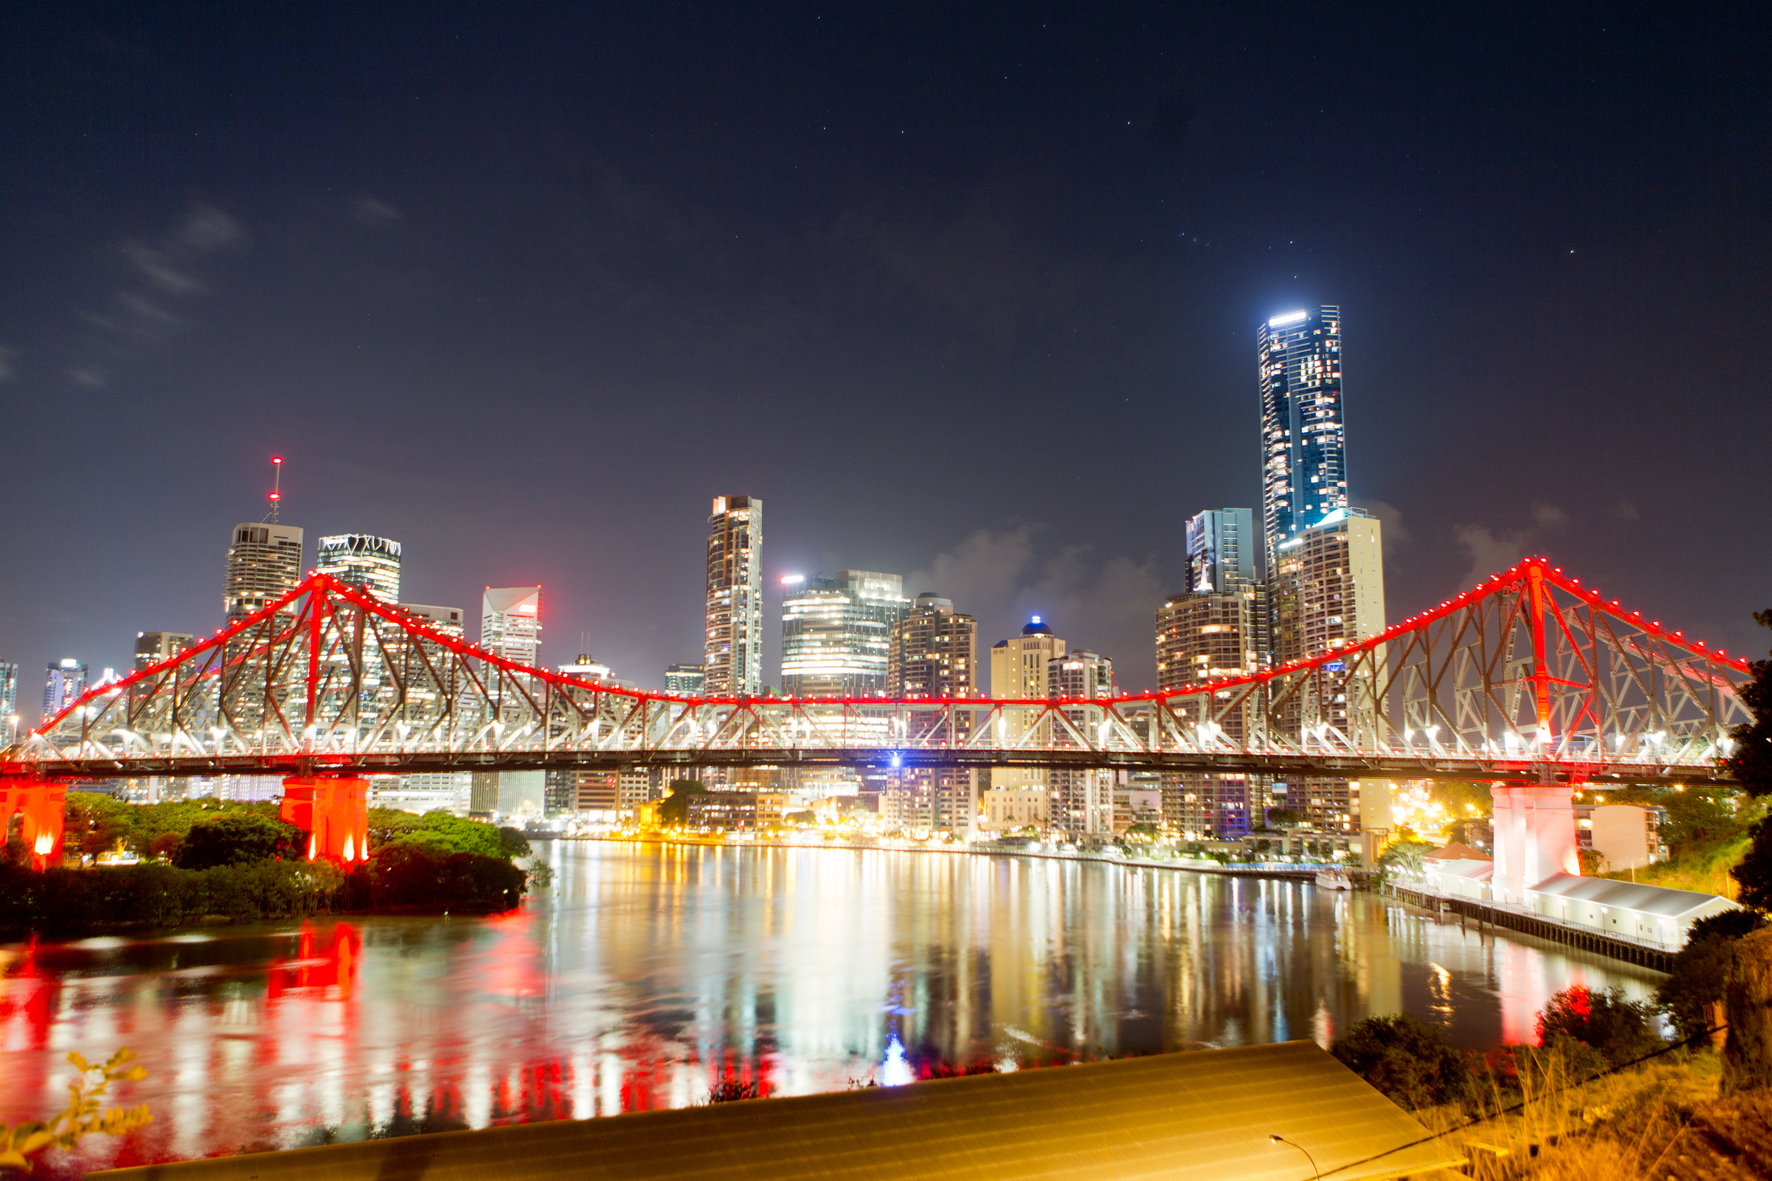 Brisbane's Story Bridge in lights